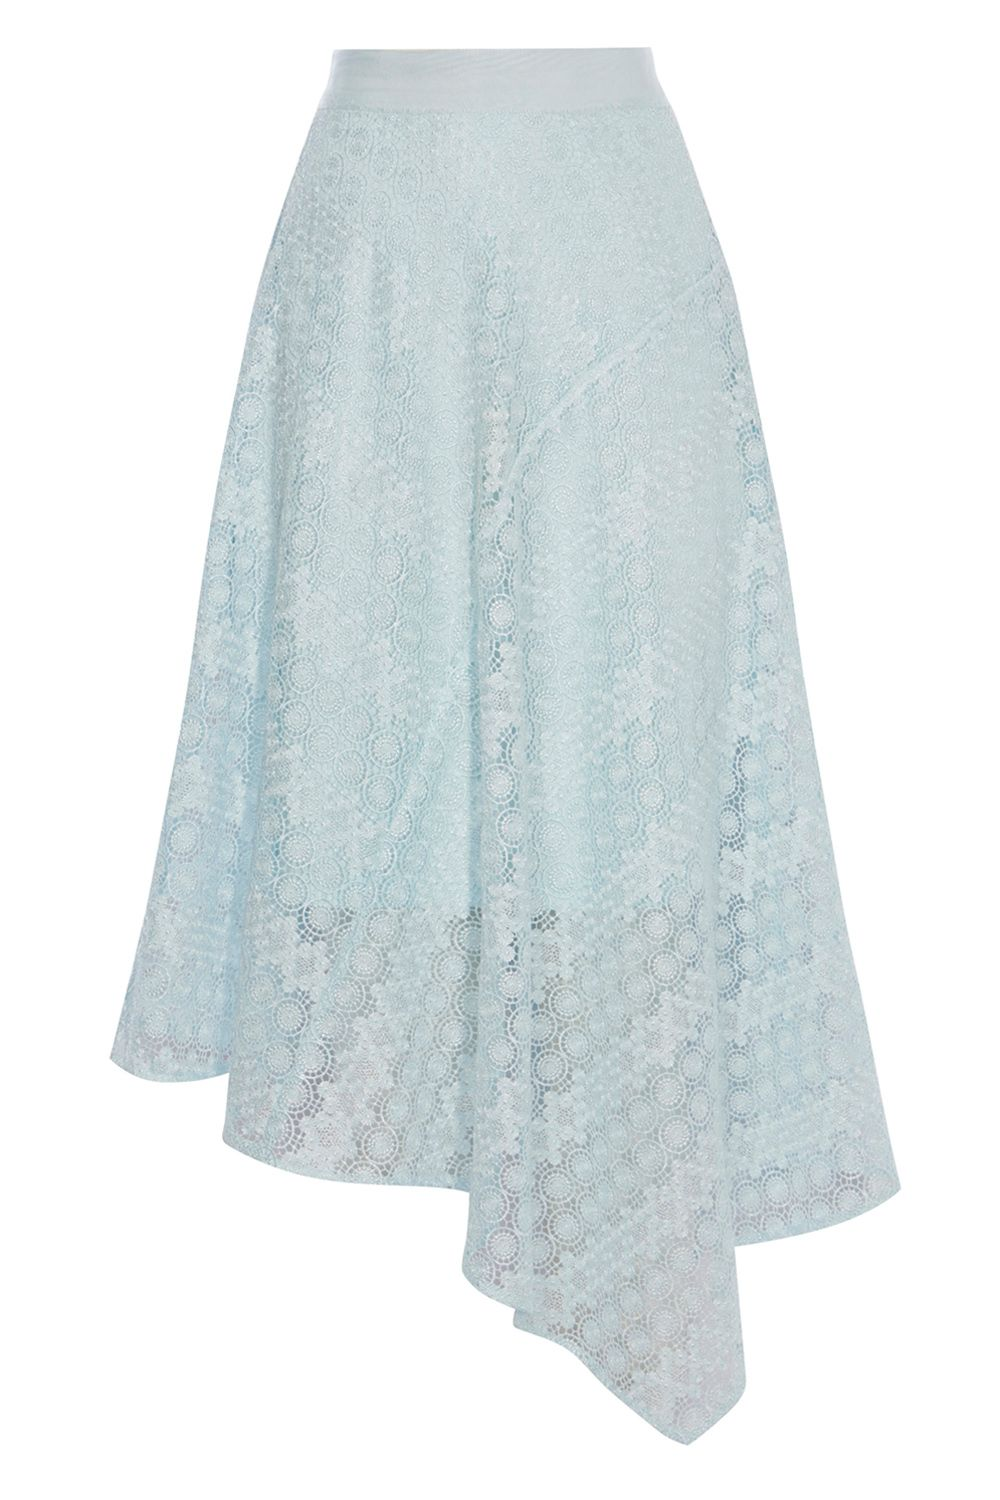 Coast Zoe Lace Skirt, Pastel Blue